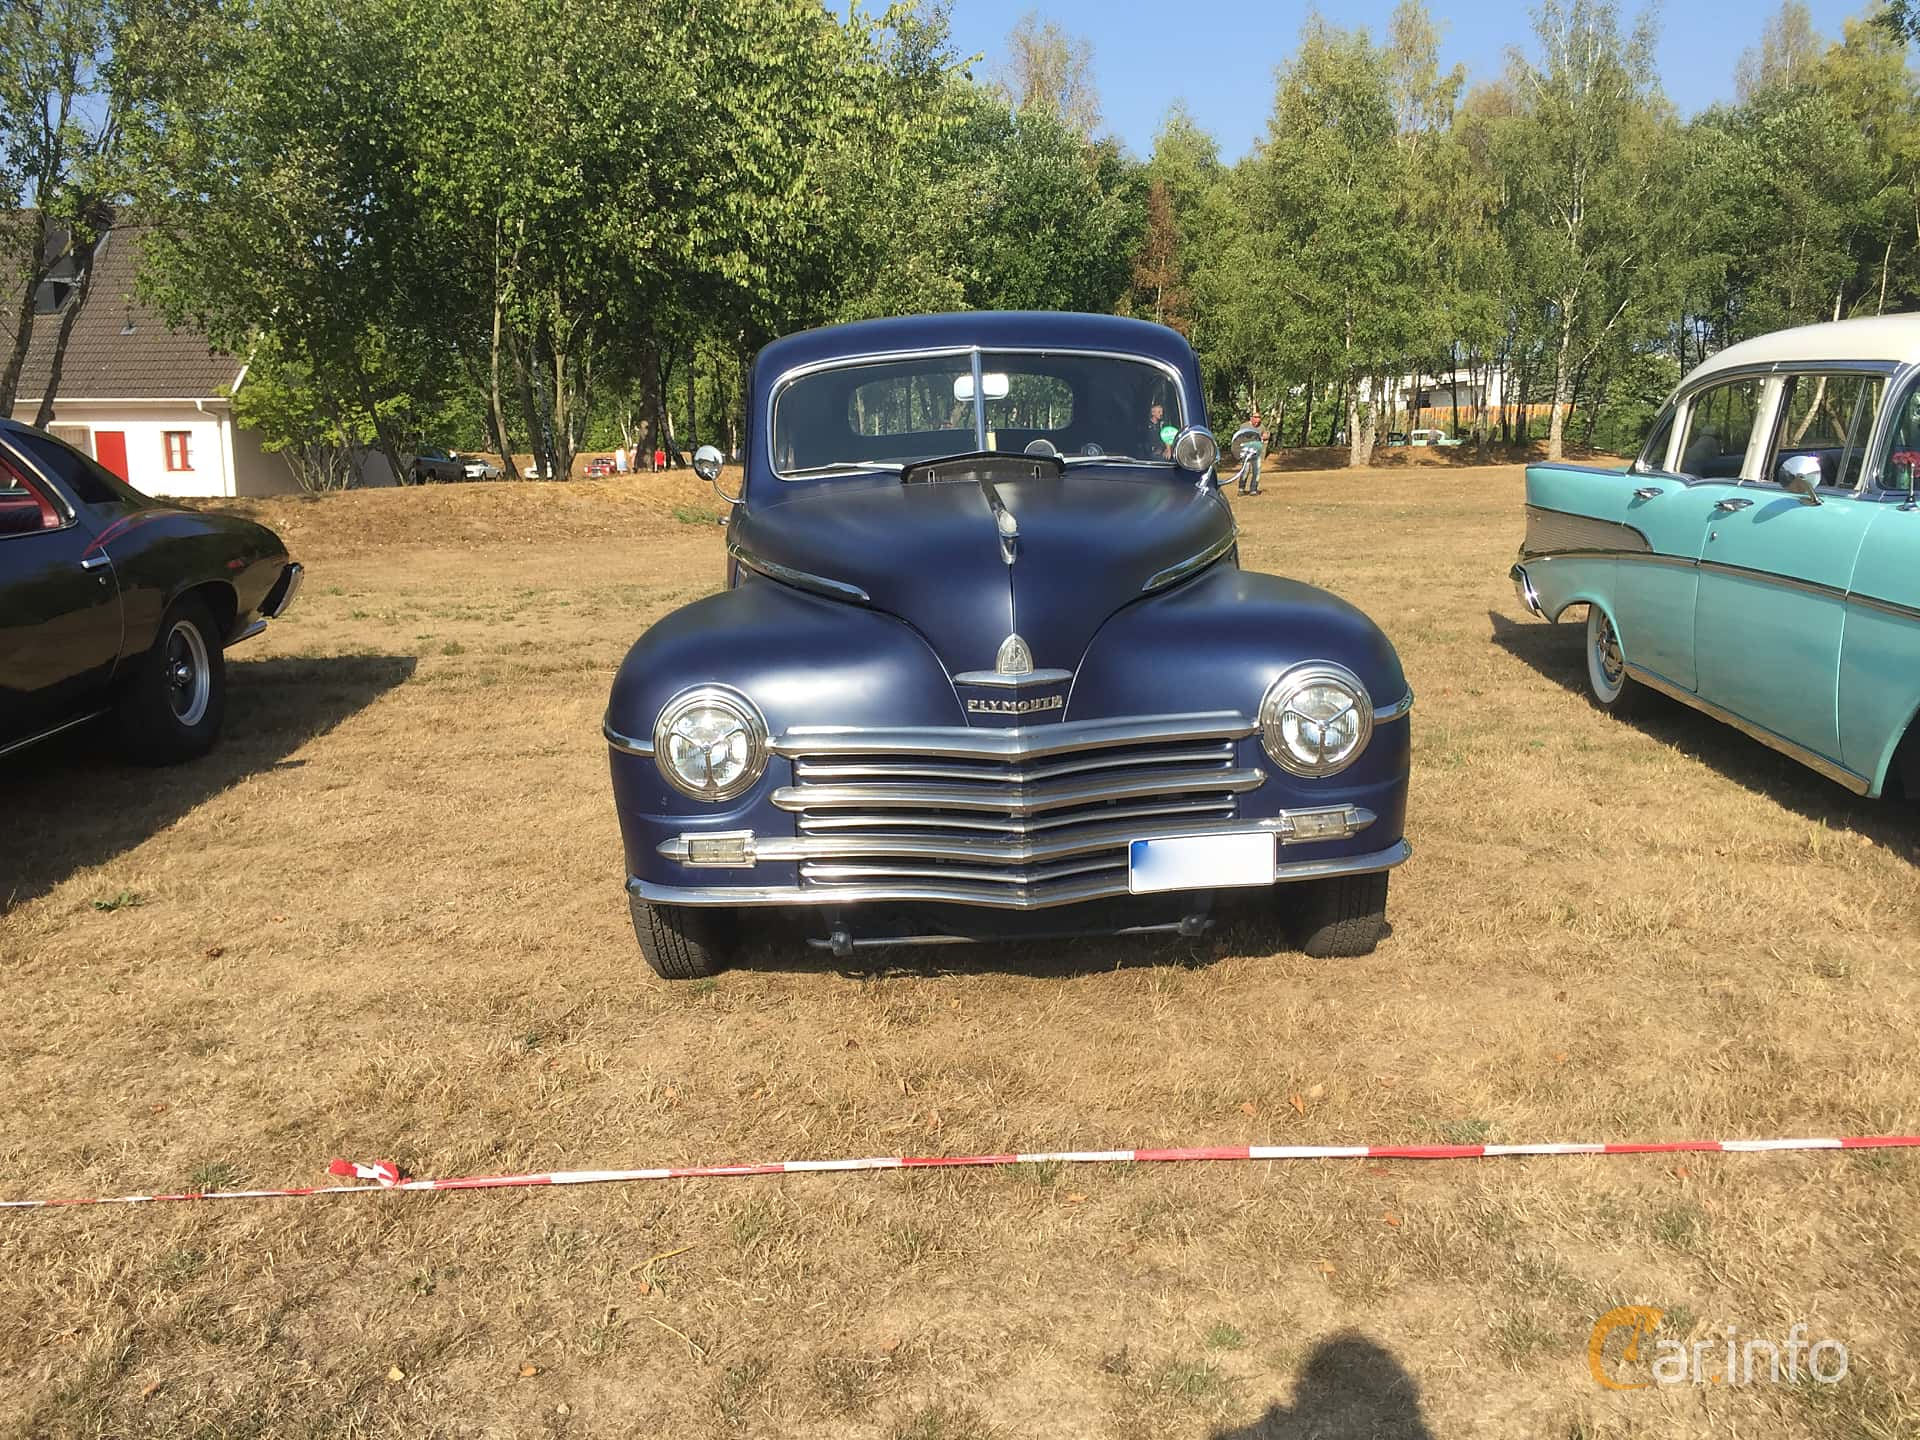 Plymouth Deluxe Coupé 3.6 Manuell, 95hk, 1948 at Eddys bilträff Billesholm Augusti 2018